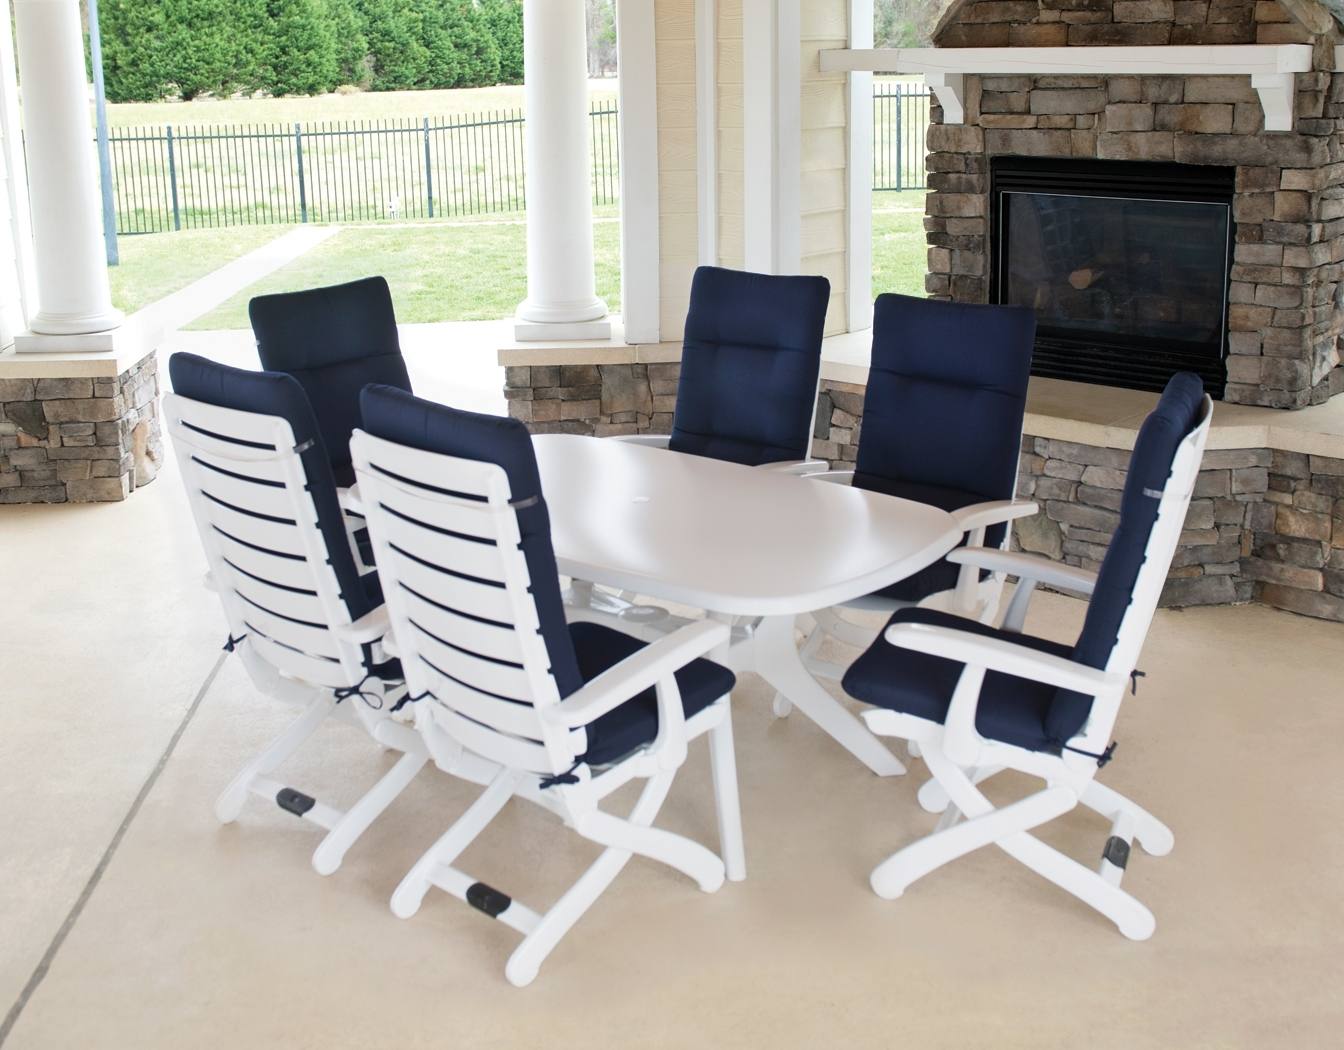 Table Tennis, Tricycles, Toys, Patio Furniture & Fitness Pertaining To Well Liked Kettler Patio Umbrellas (View 19 of 20)